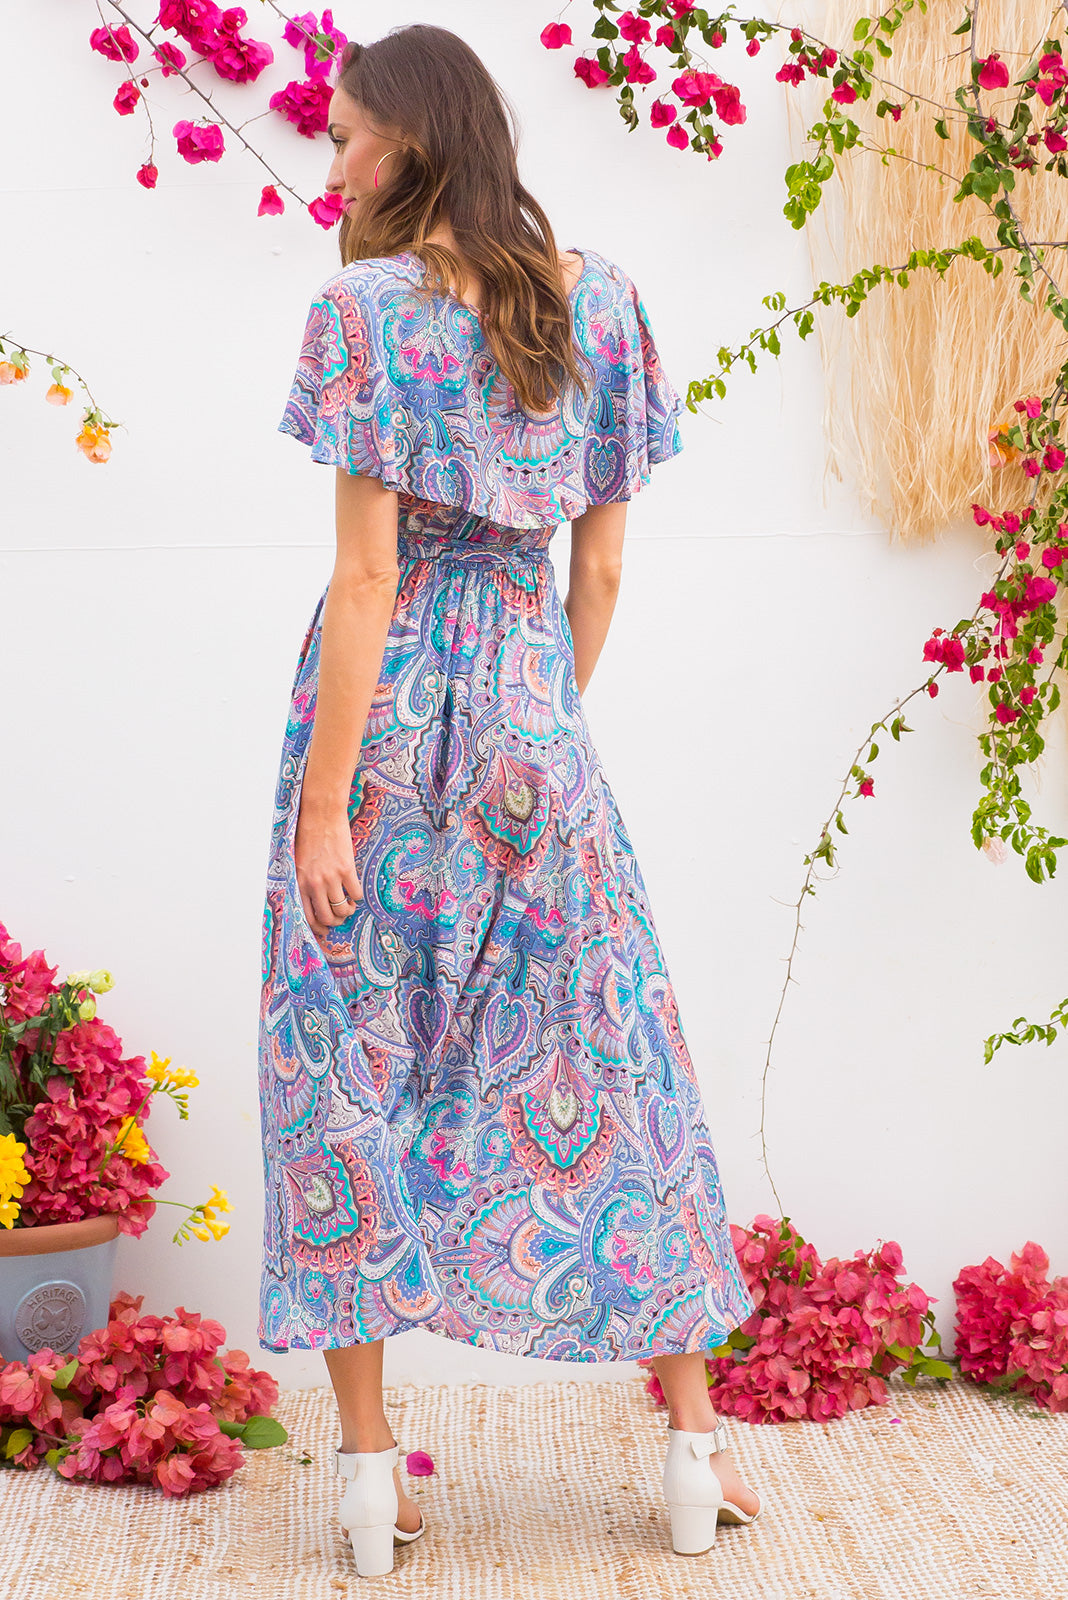 Rio Rita Blue Magic Maxi vintage inspired Wrap Dress with a full frill around the neck and sleeve in a soft sorbet coloured paisley print on rayon